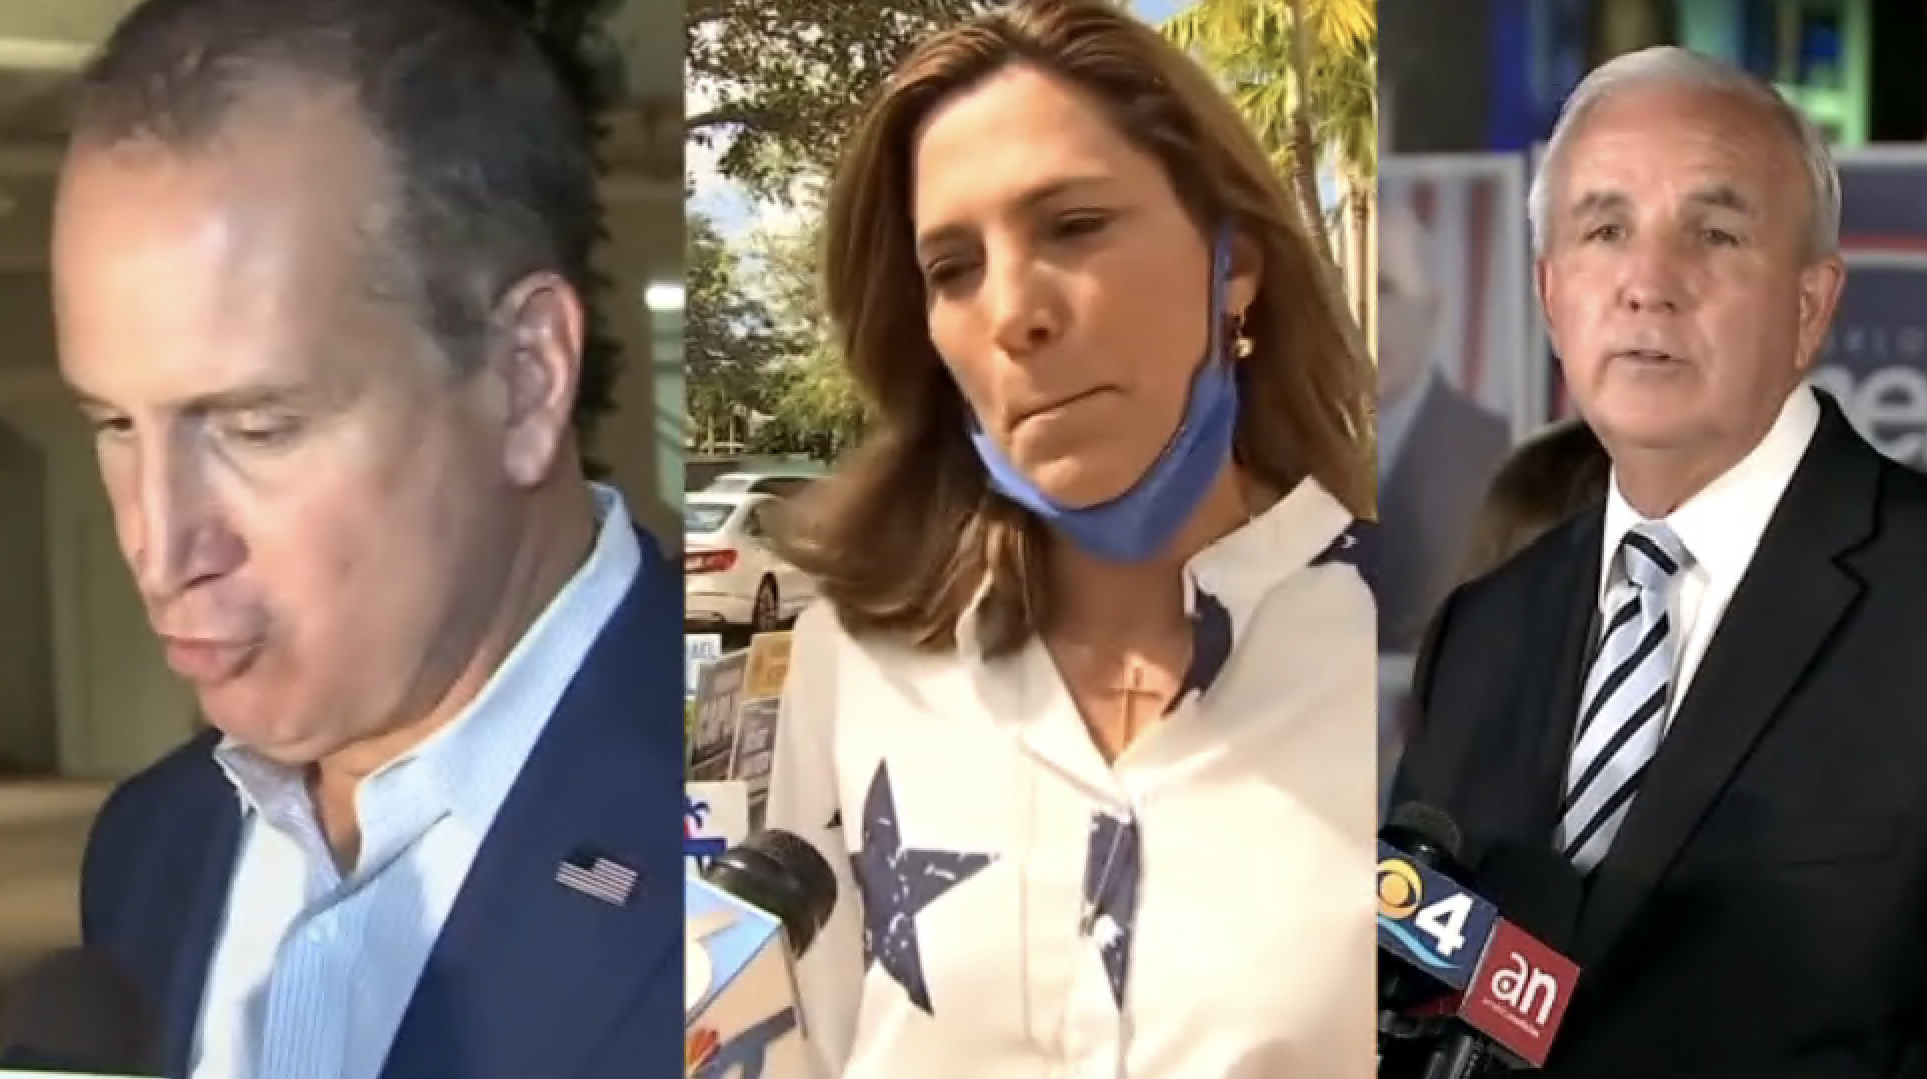 UM Political Expert Looks at Future of South Florida Lawmakers Who Supported Trump